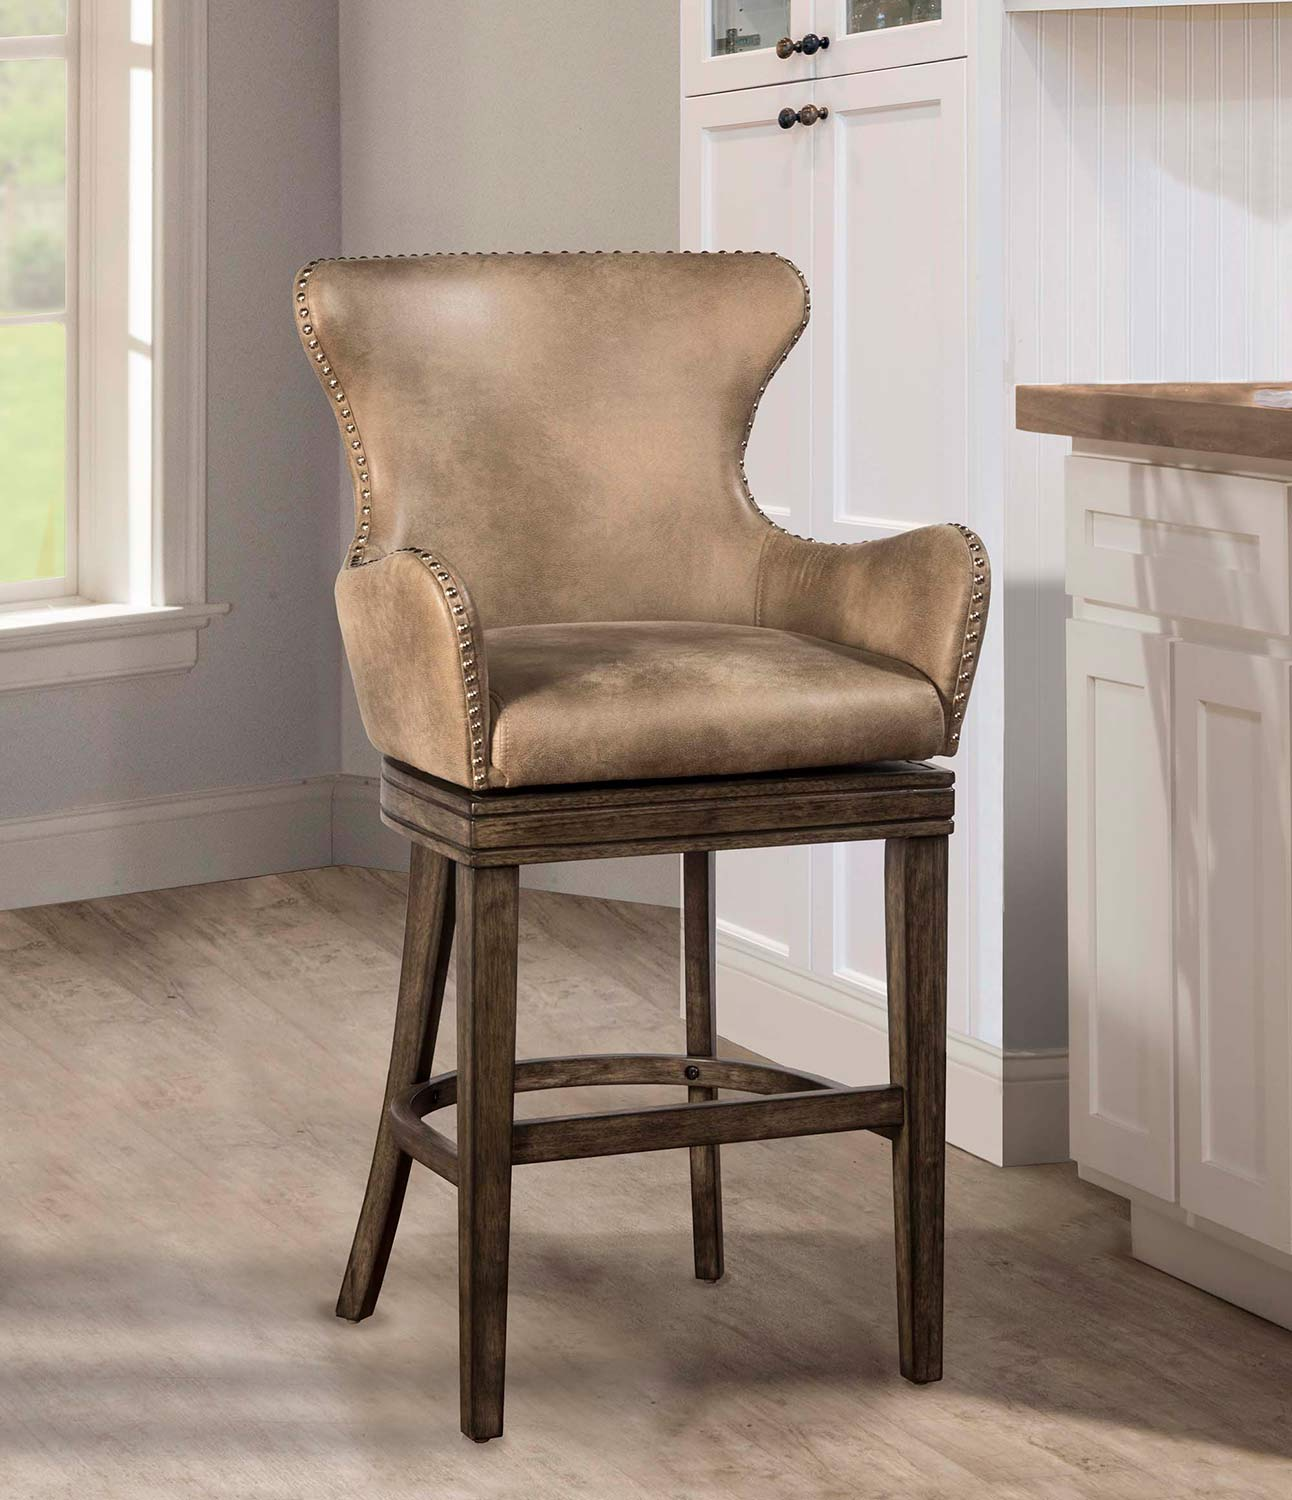 Hillsdale Caydena Swivel Counter Stool - Rustic Gray